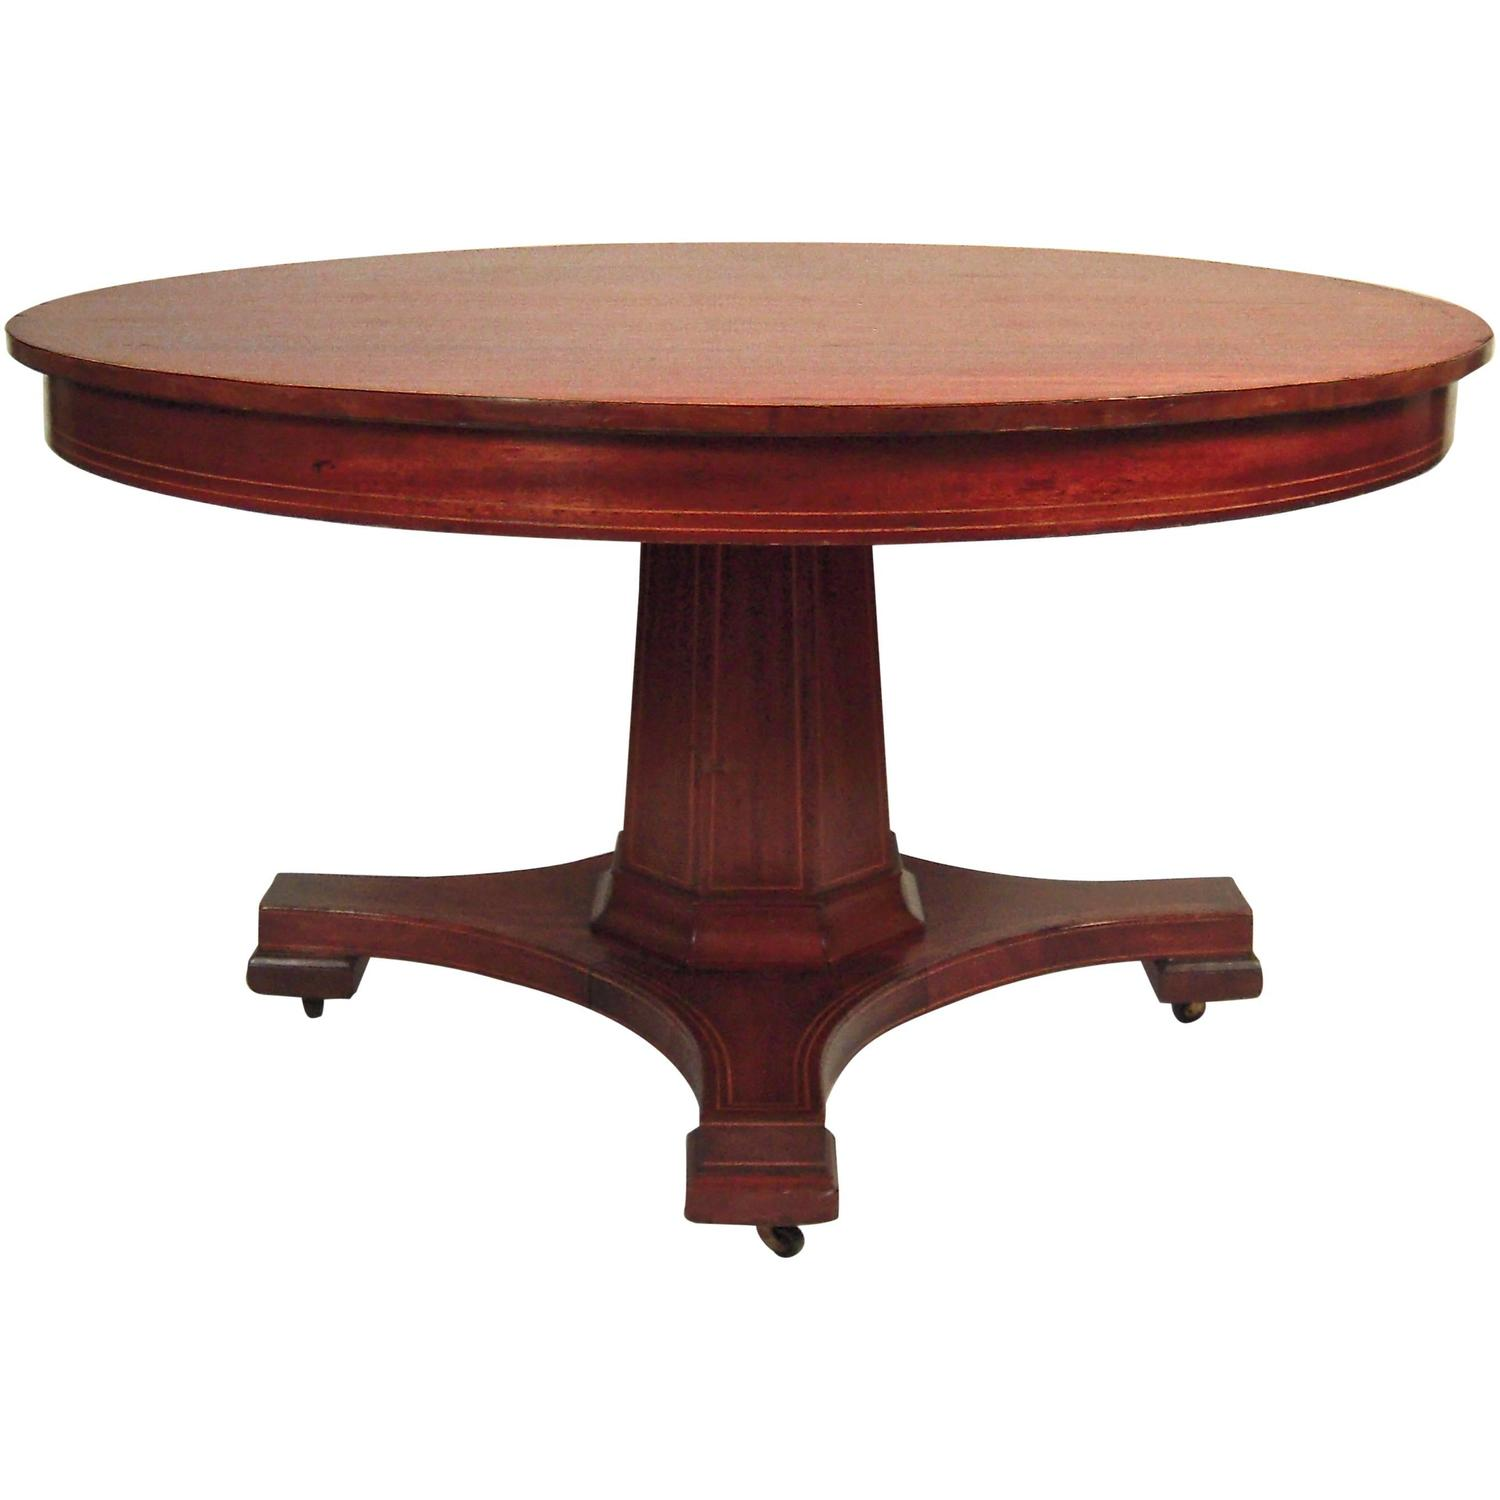 Round Dining Table With Extensions Inlaid Mahogany Round Extension Dining Table 54